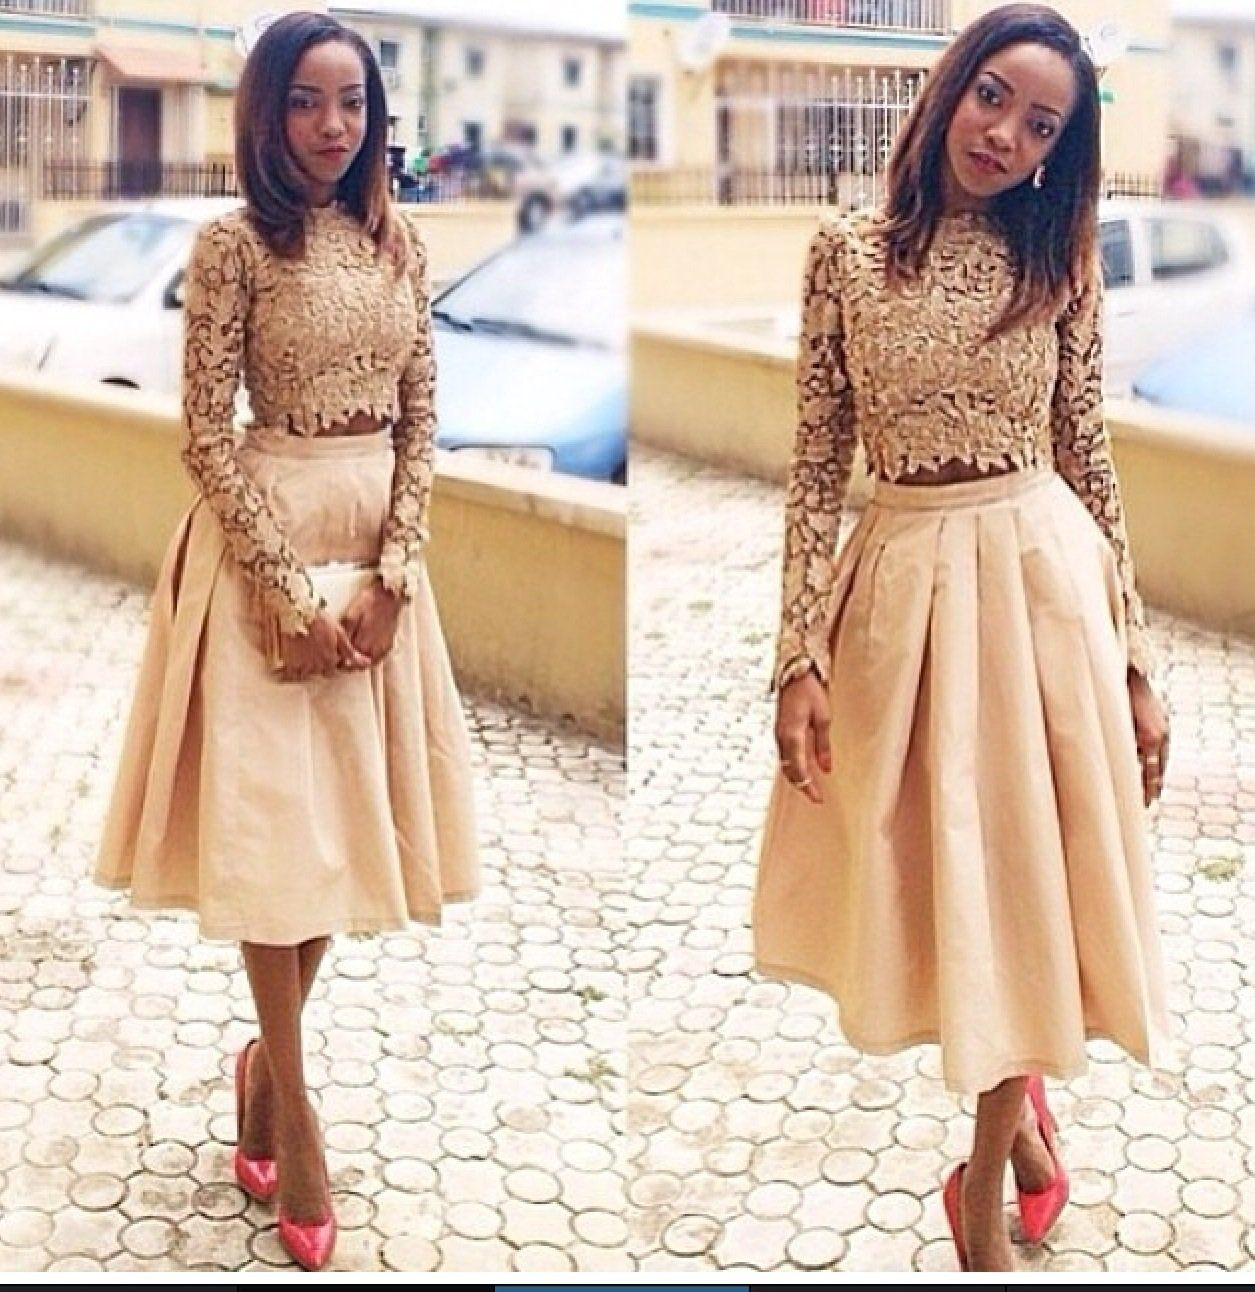 Lace dress nigeria  Pin by Betty on African clothing  Pinterest  Classy outfits